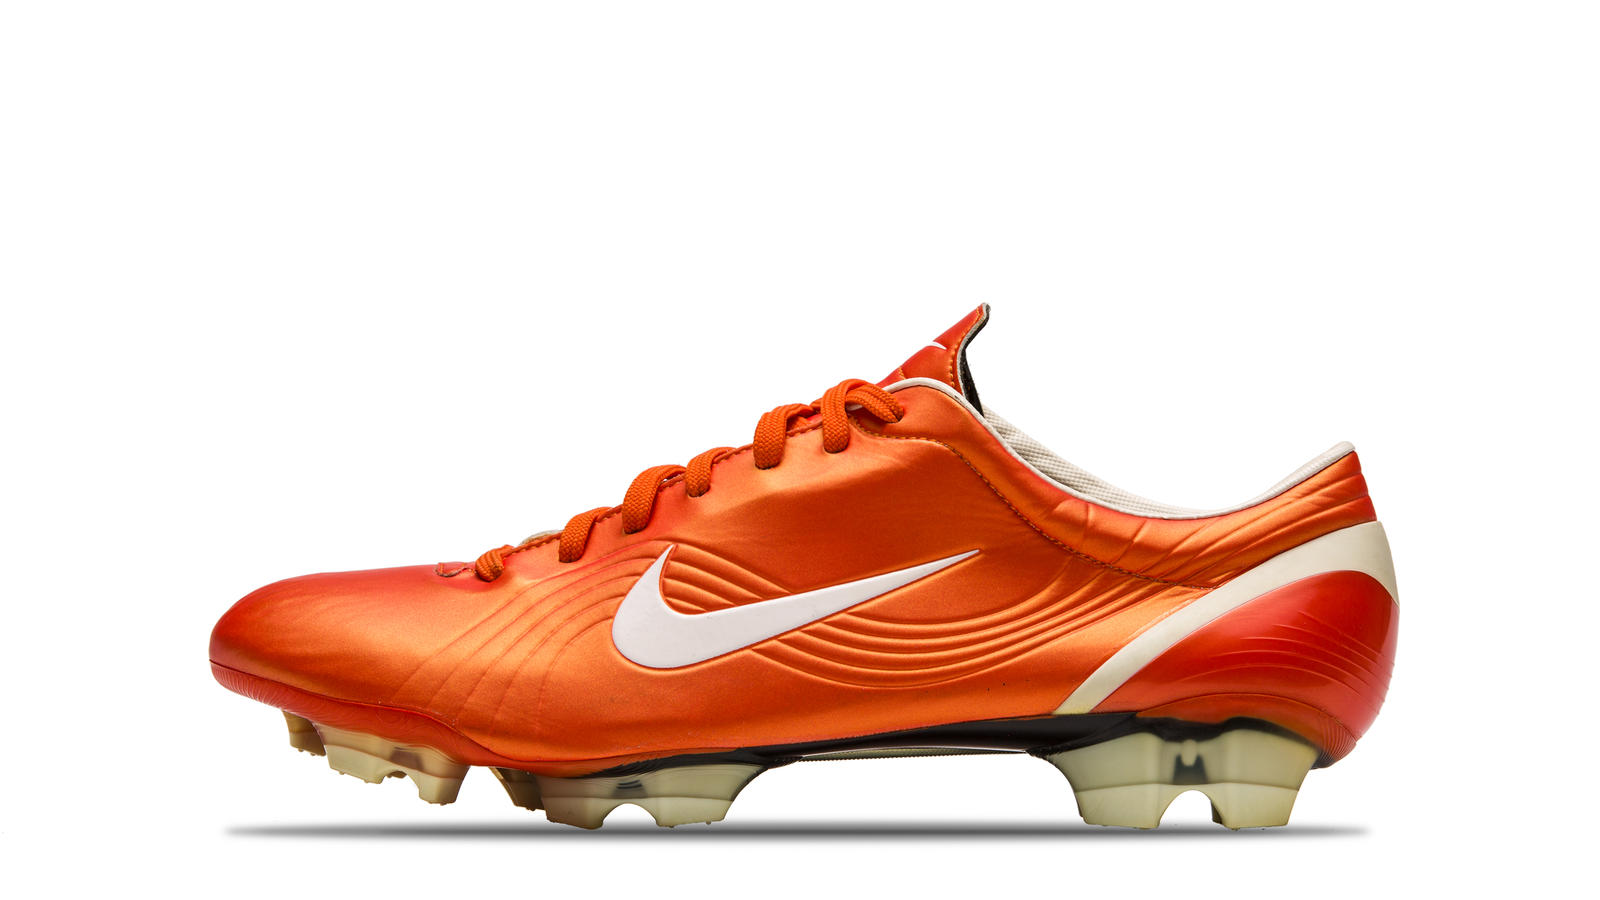 2003 Mercurial Vapor Orange